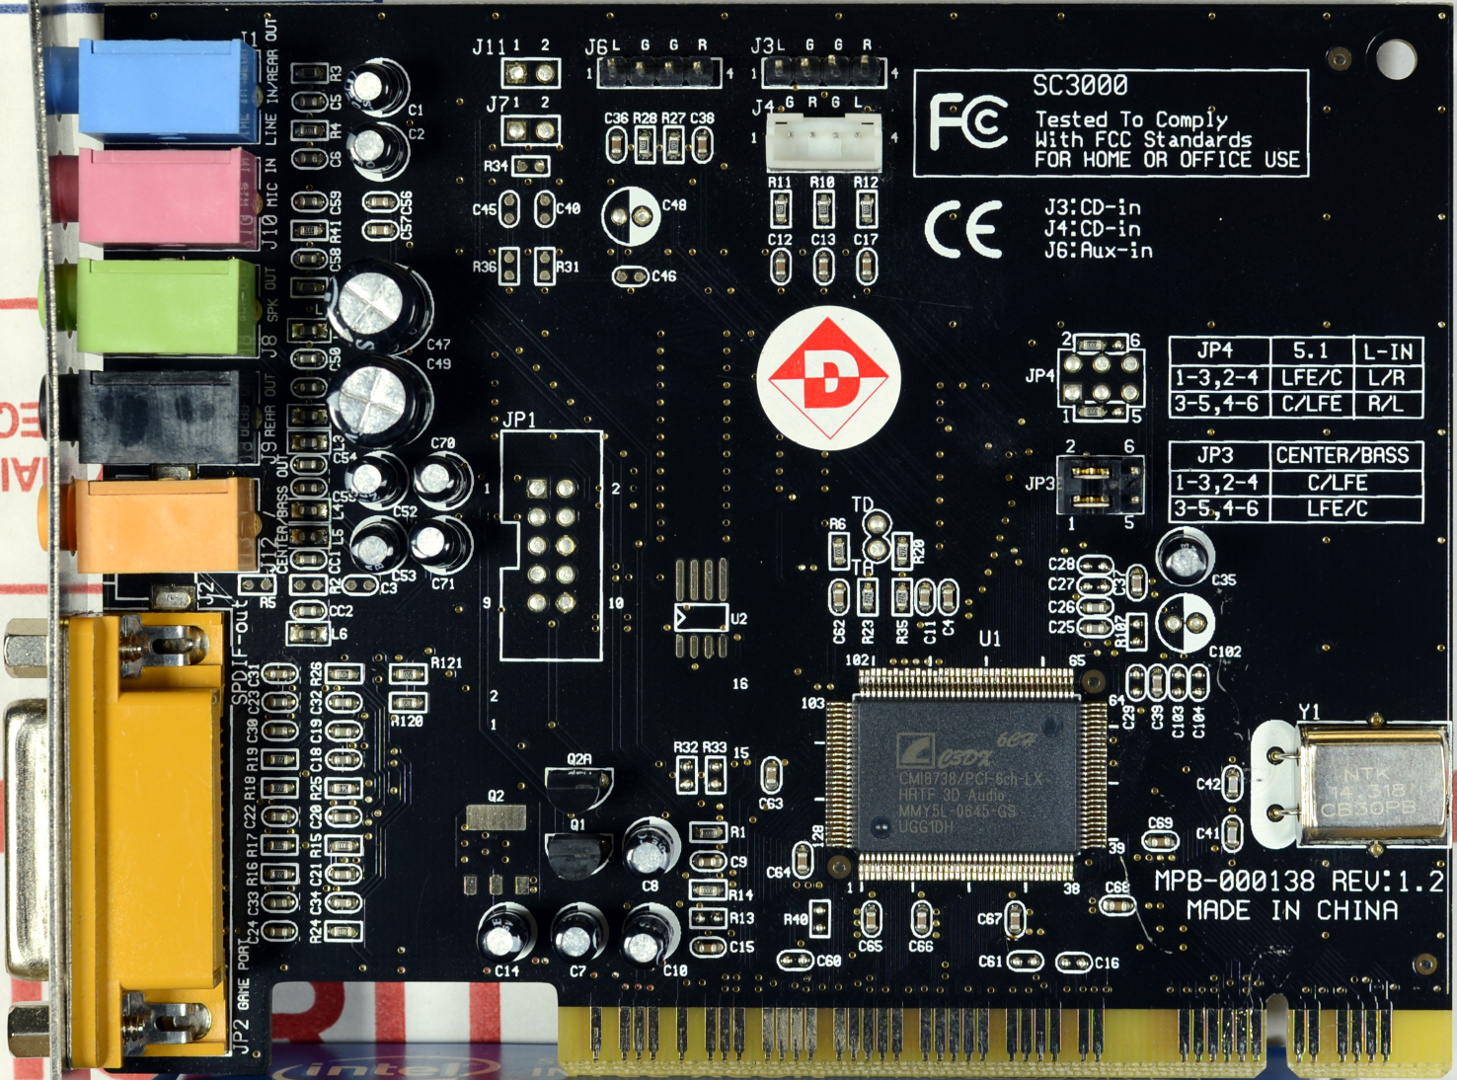 Pci Audio Notes Sound Card 4 Channel With Game Port The Cmi8738 Presents As A High End Chip Support For Both 441 And 48 Khz Sample Rates Which Is Enigmatic Given That 14318 Mhz Clock Source